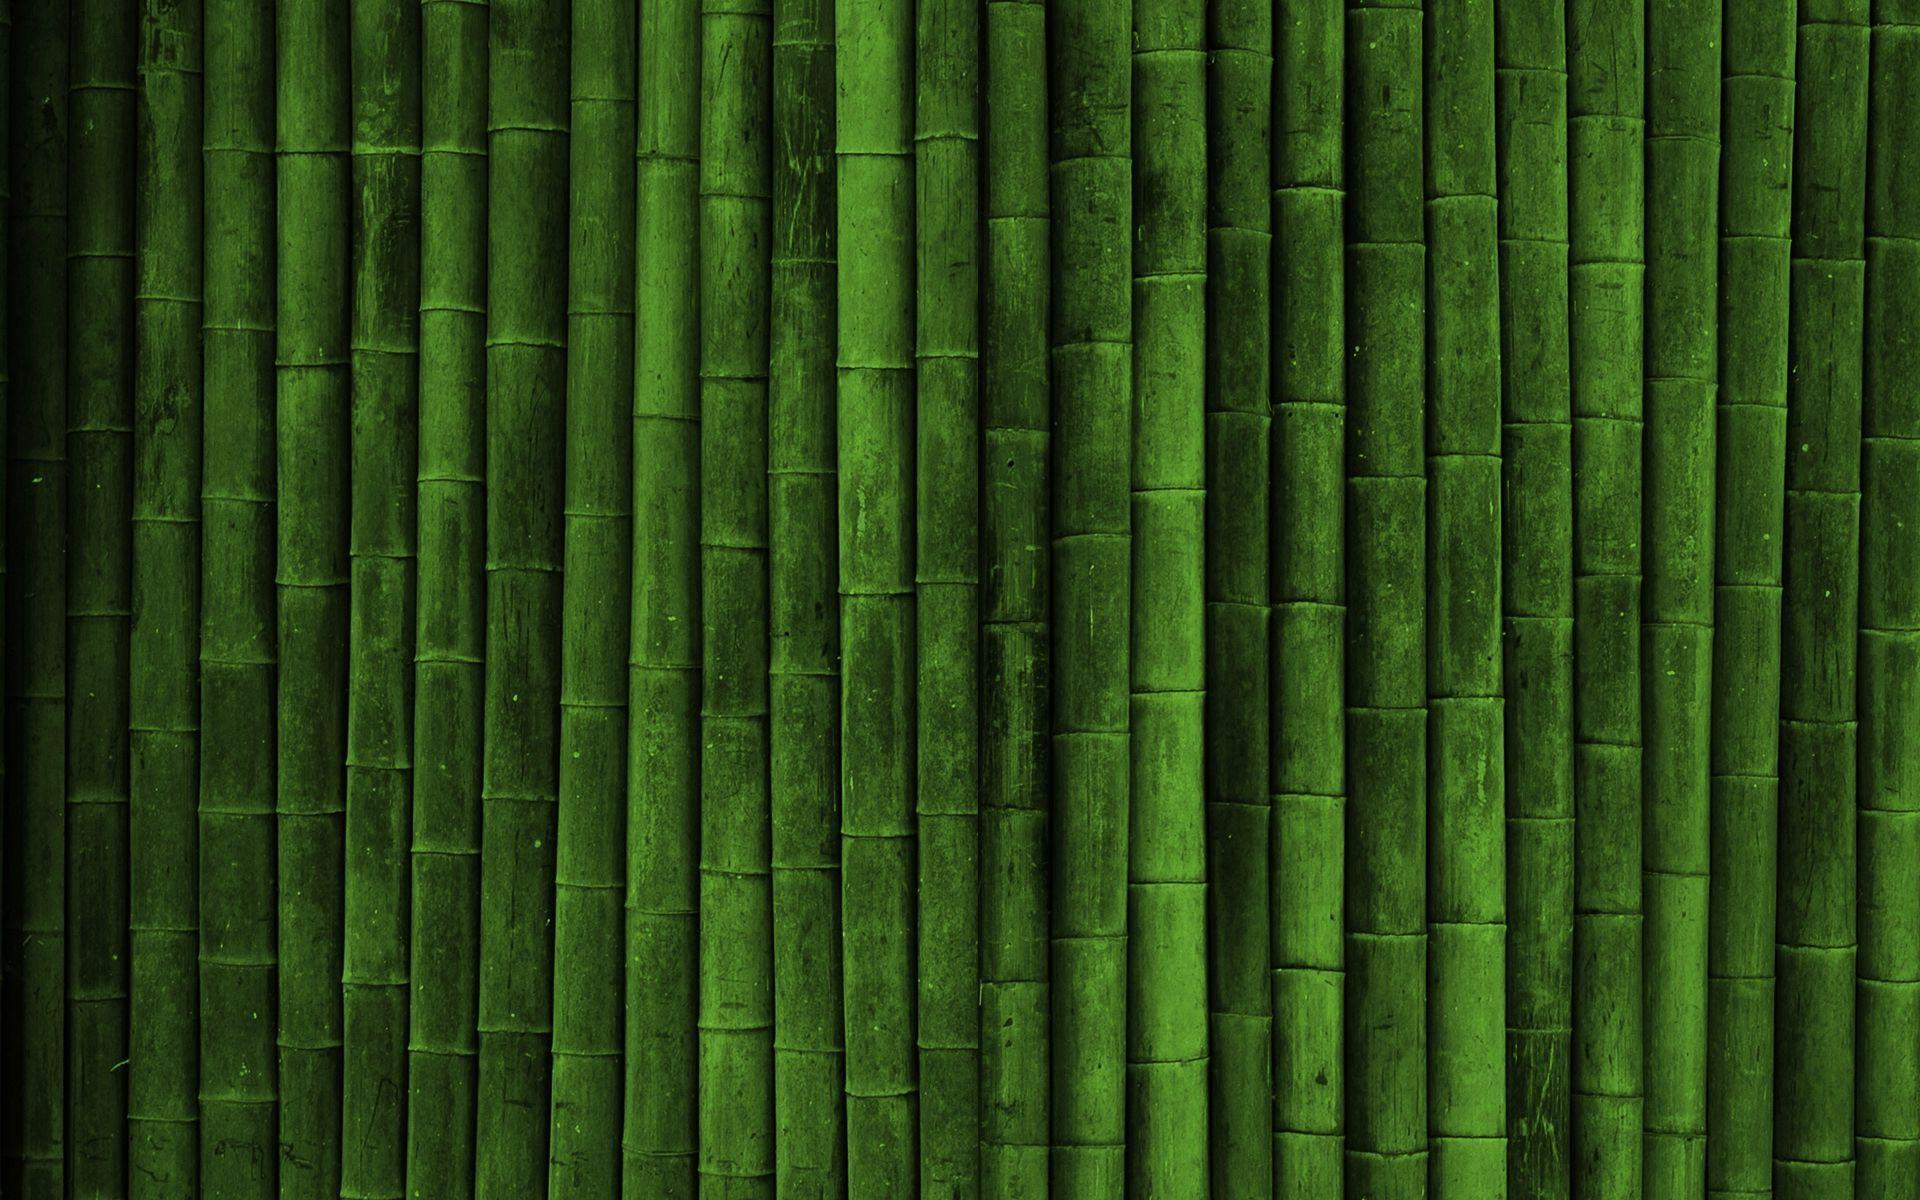 Bamboo Backgrounds Image Wallpaper Cave